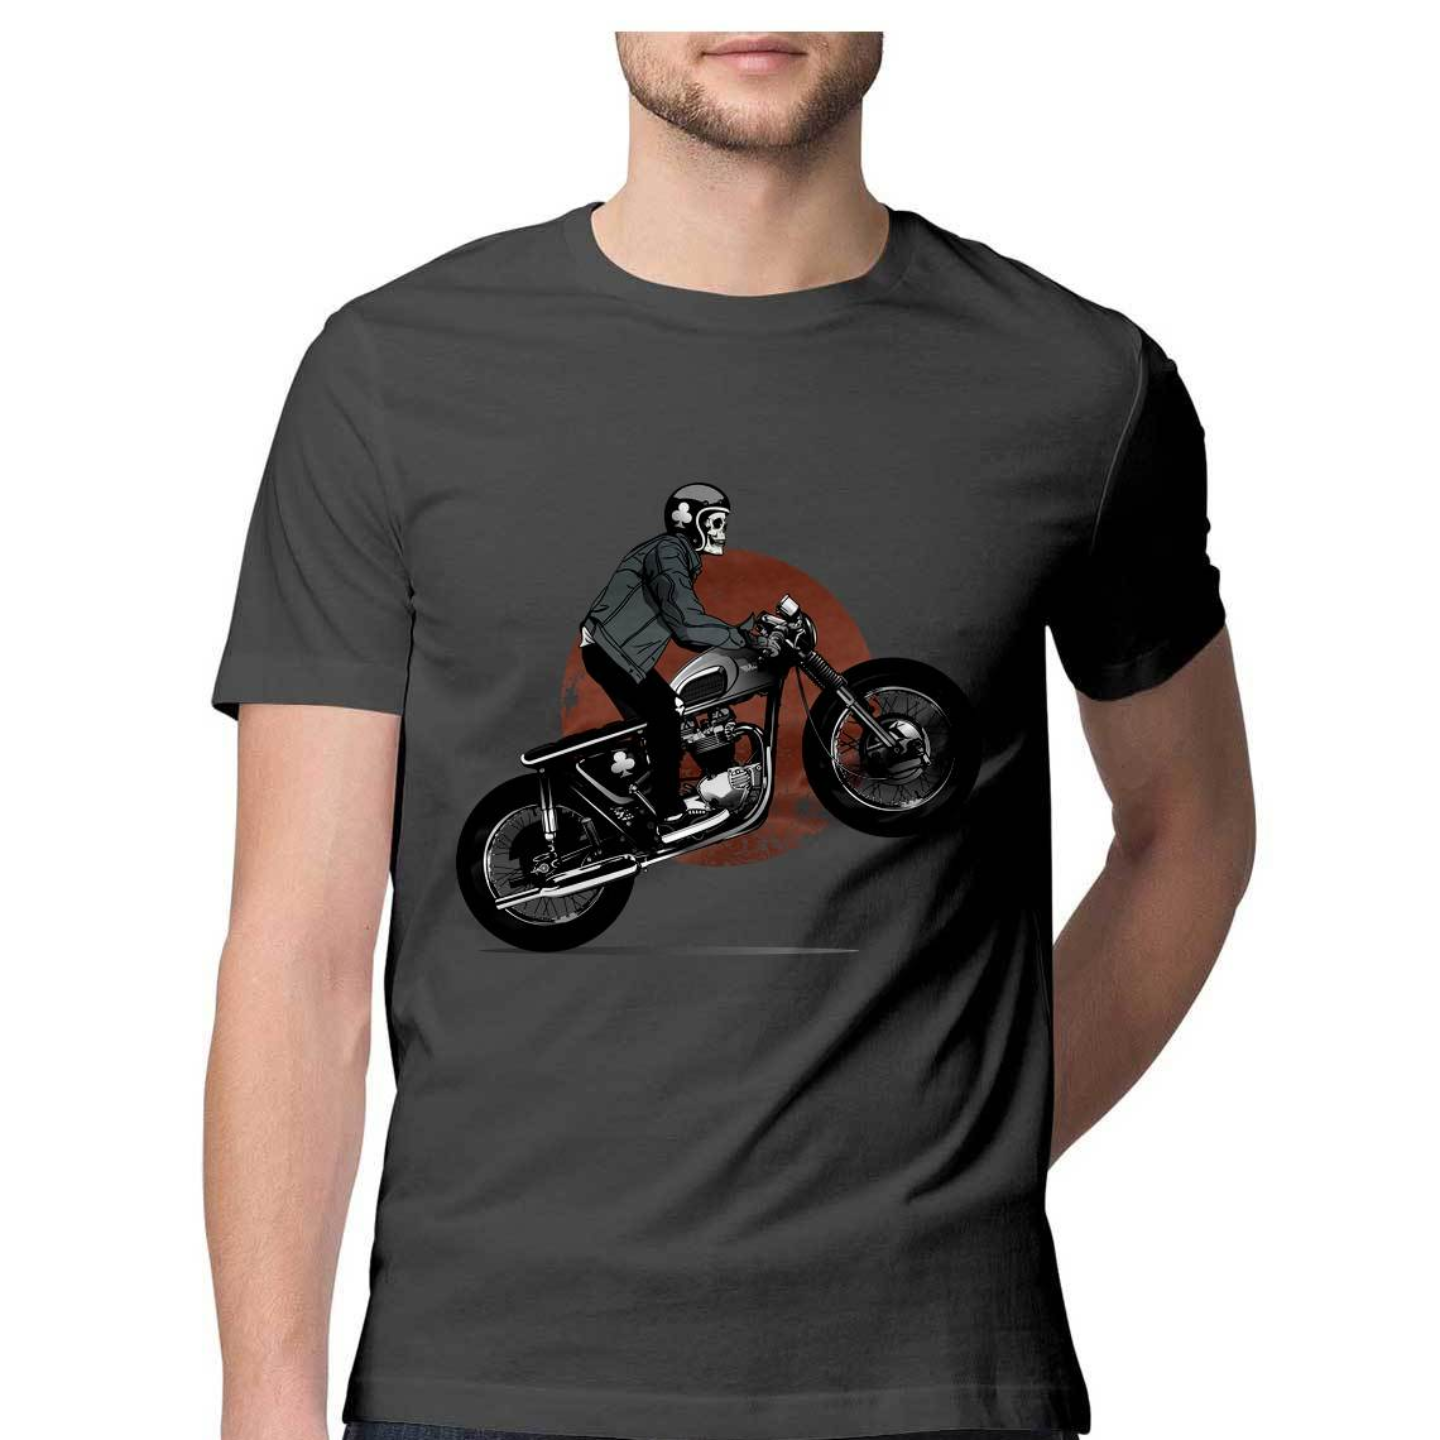 Skeleton Riding Bike Round Neck Tshirt